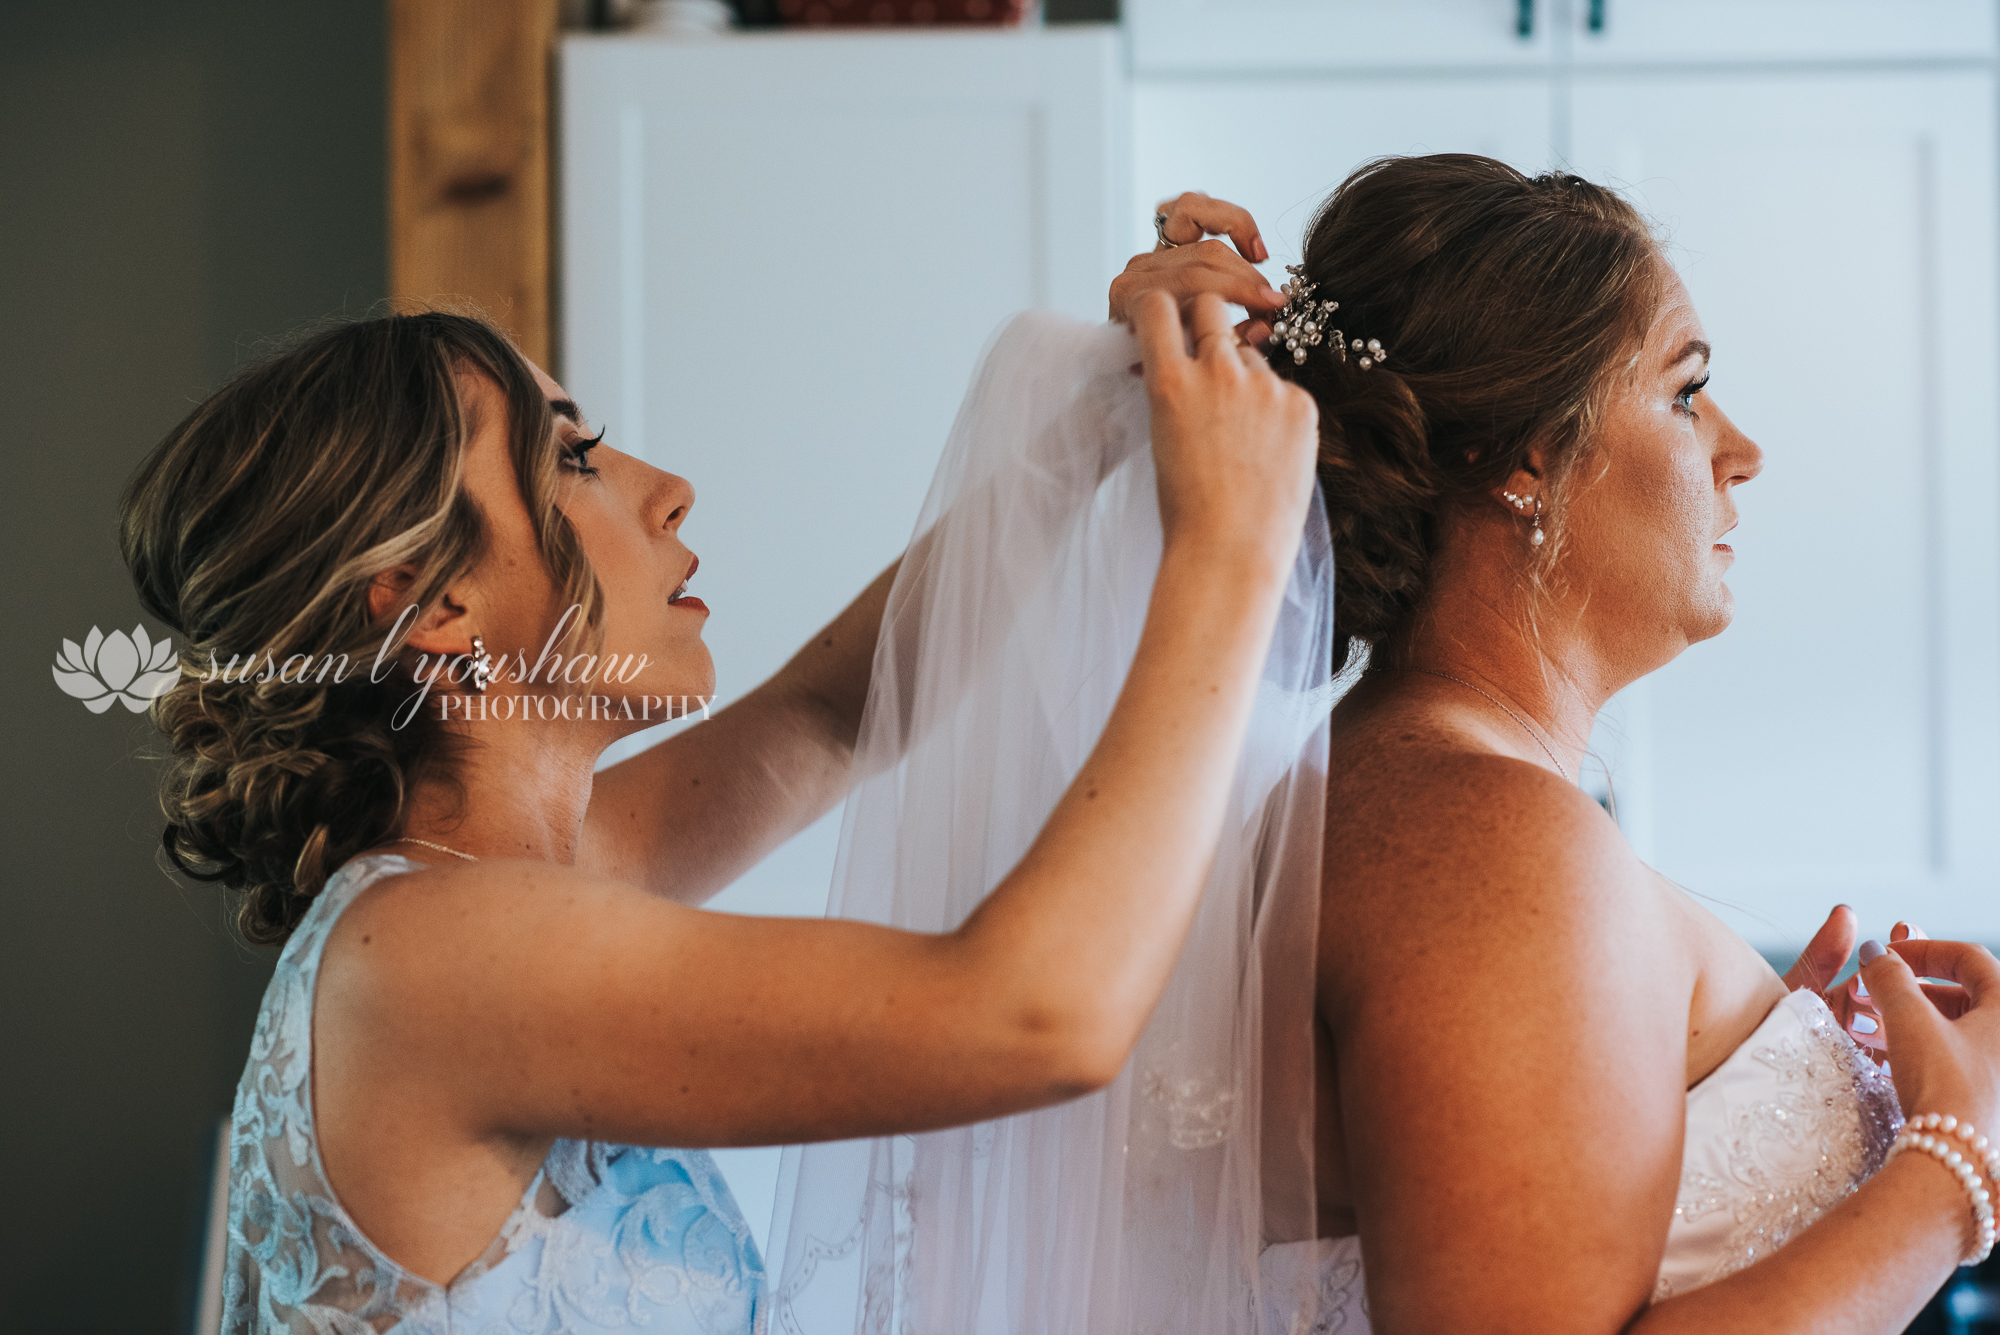 Erin and Jason Wedding Photos 07-06-2019 SLY Photography-49.jpg